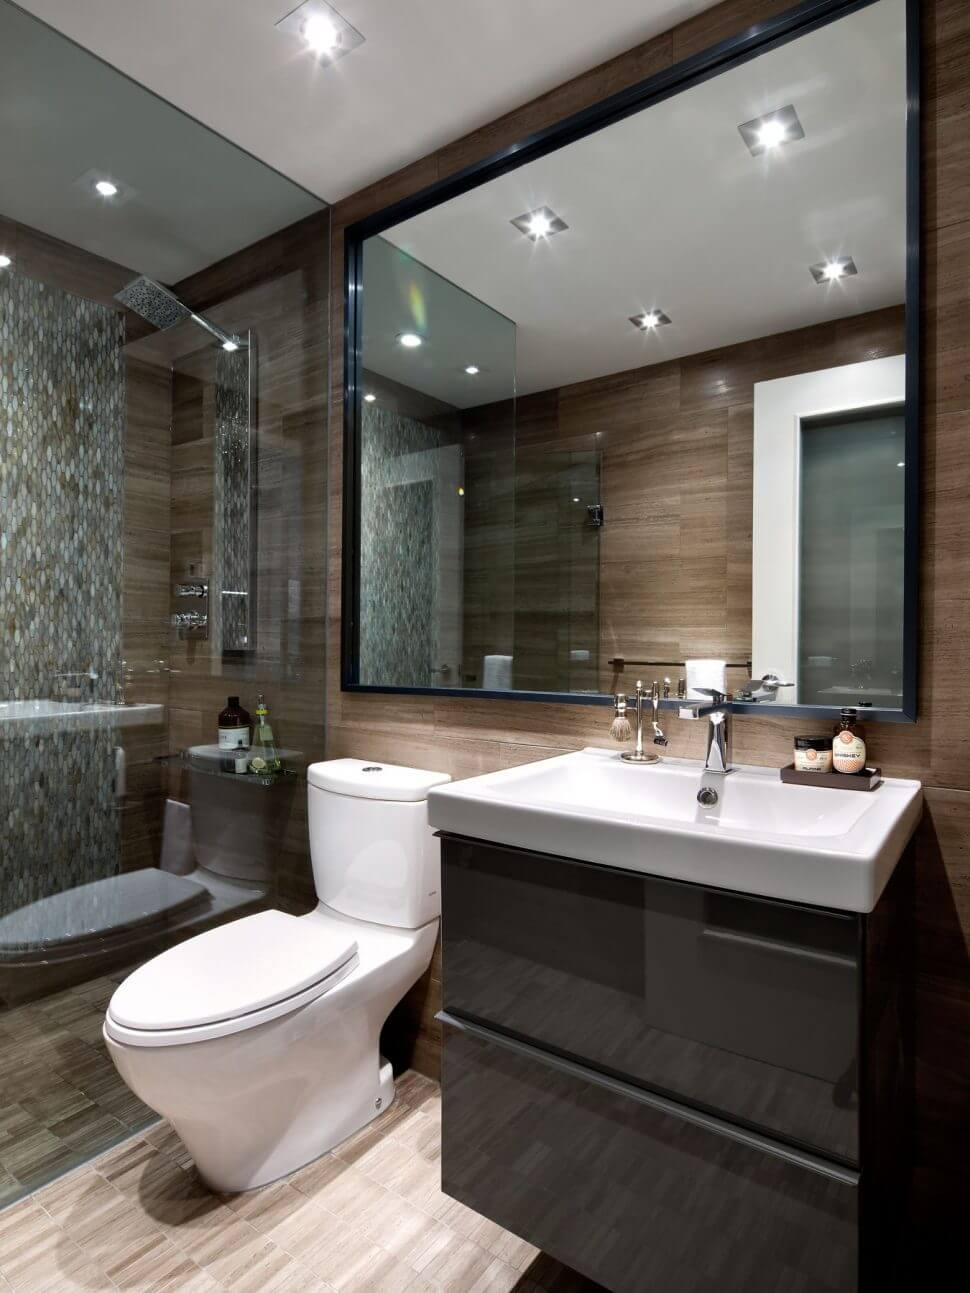 Thin Frame stunning bathroom mirror ideas for single sink and diy vanity as wells amusing